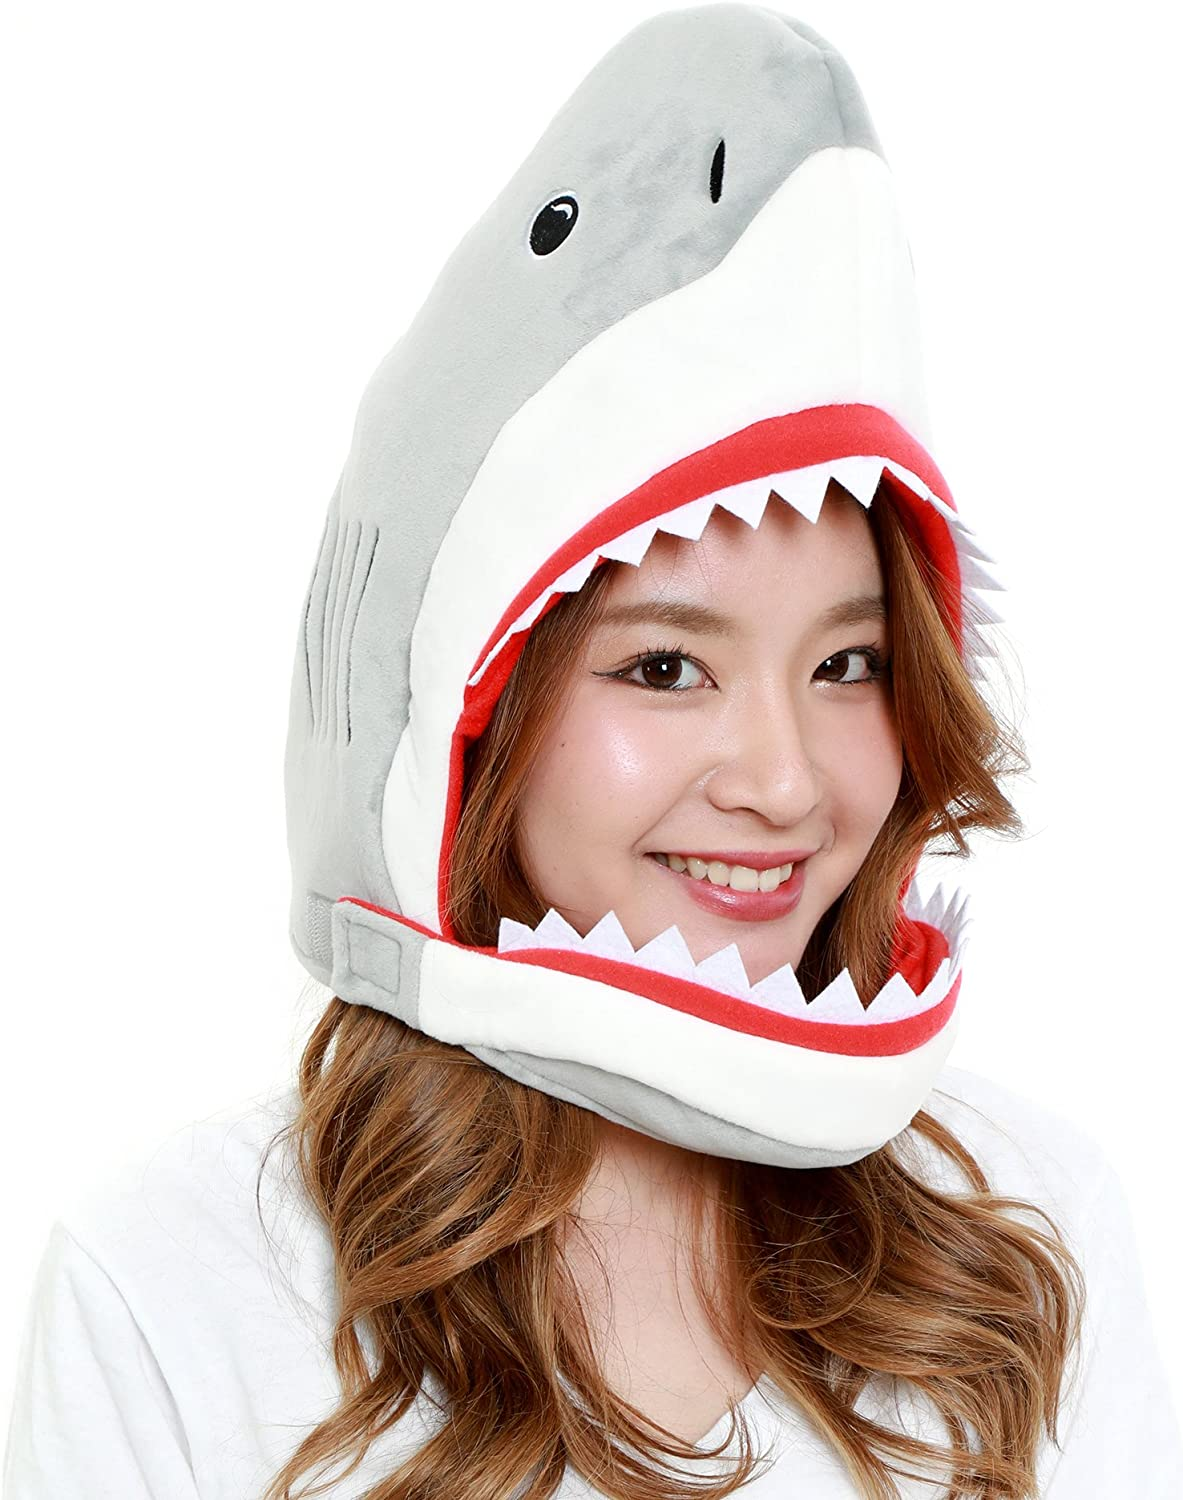 CLEVER IDIOTS INC Animal Head Mask - Plush Costume Halloween Parties & Cosplay (Shark)